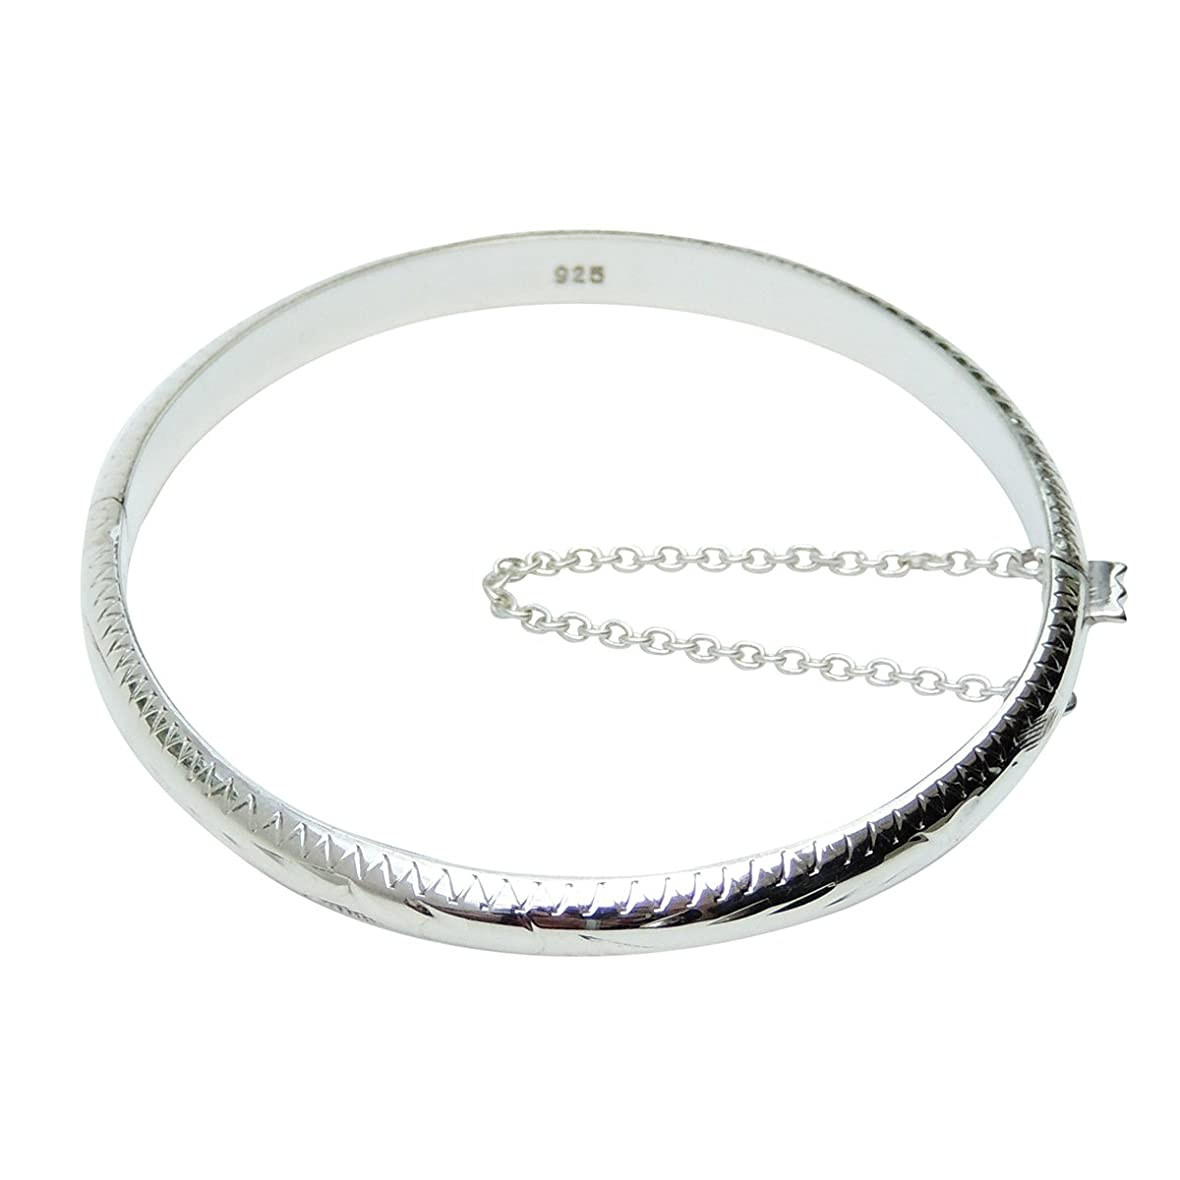 62351ff268674 bangles girls - bhcleaningservices.com